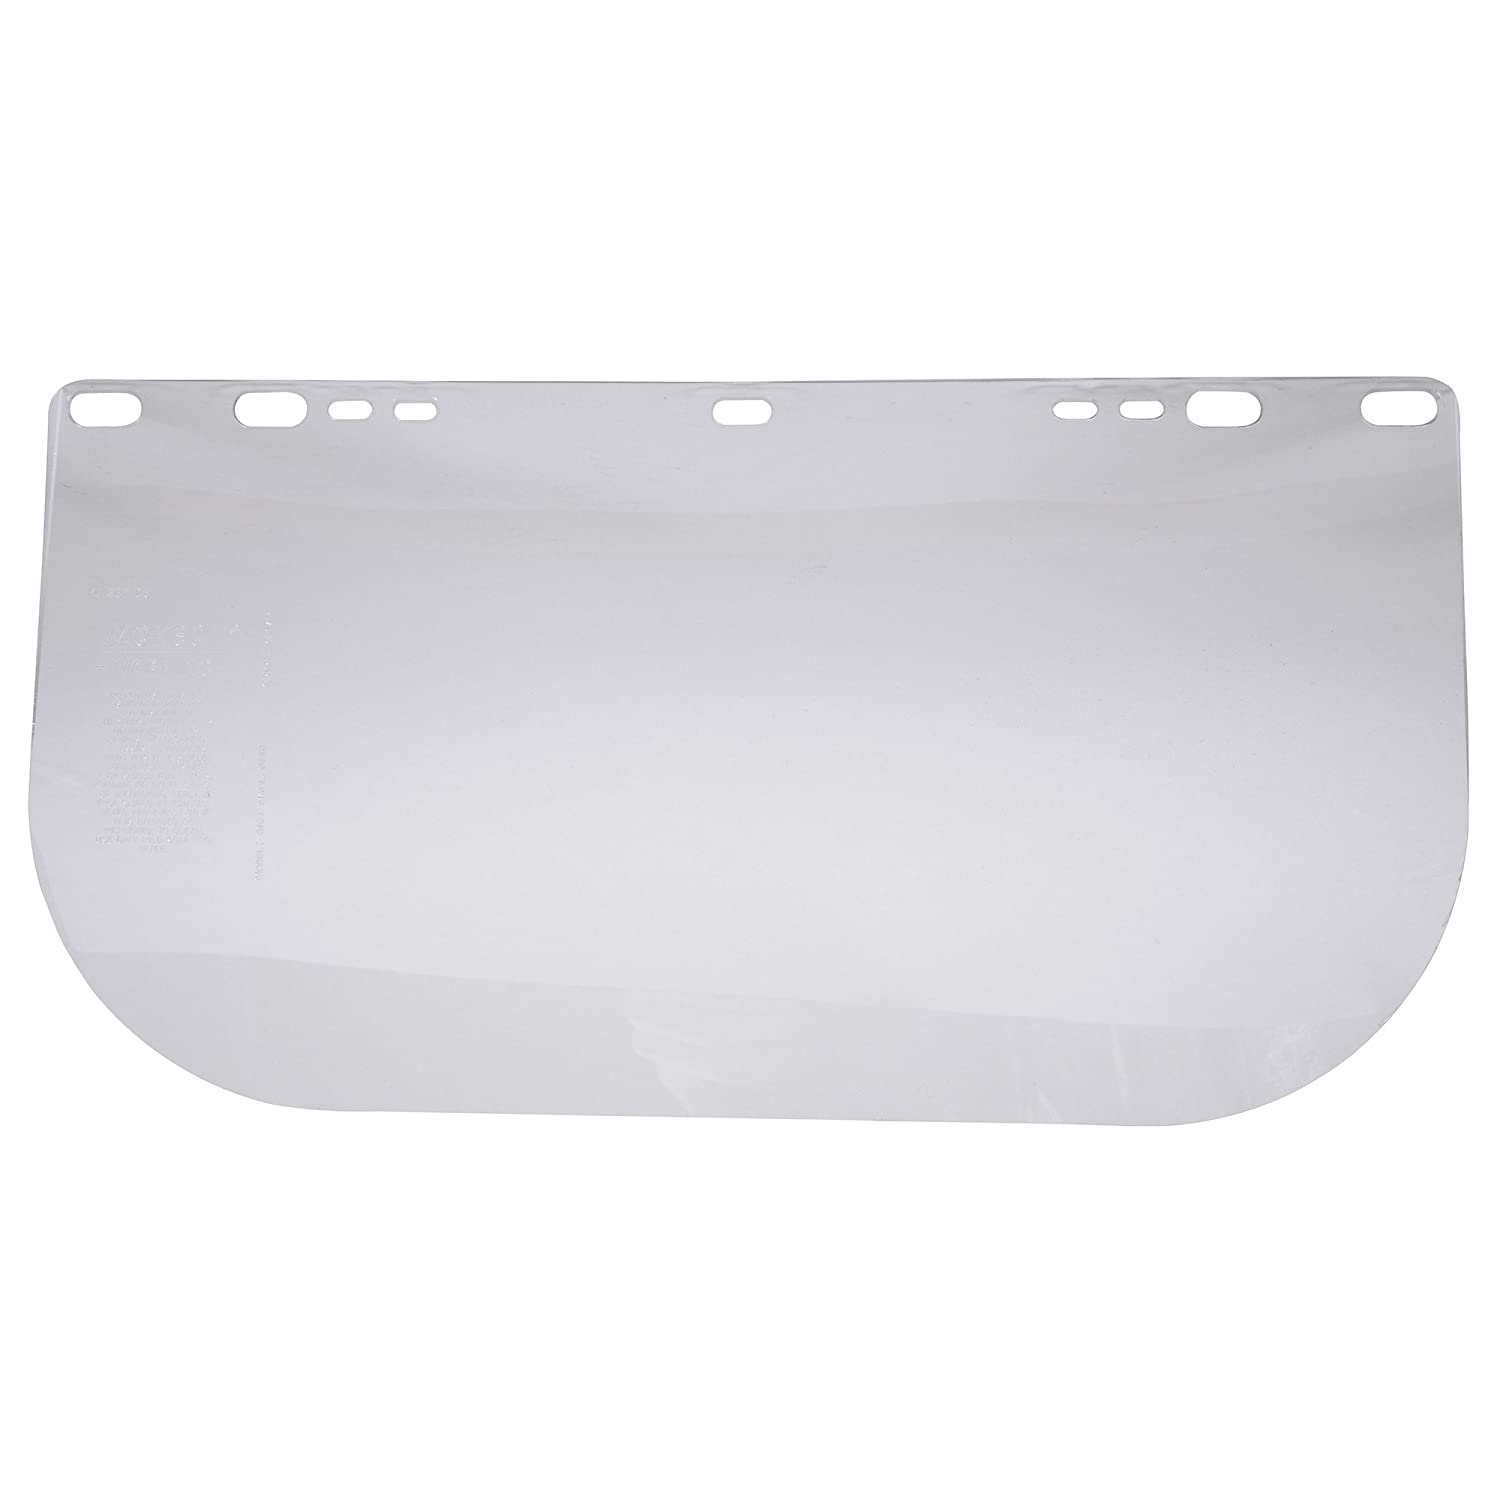 Jackson Max 62% OFF Surprise price Safety Face Shield Window 8 for Headgear